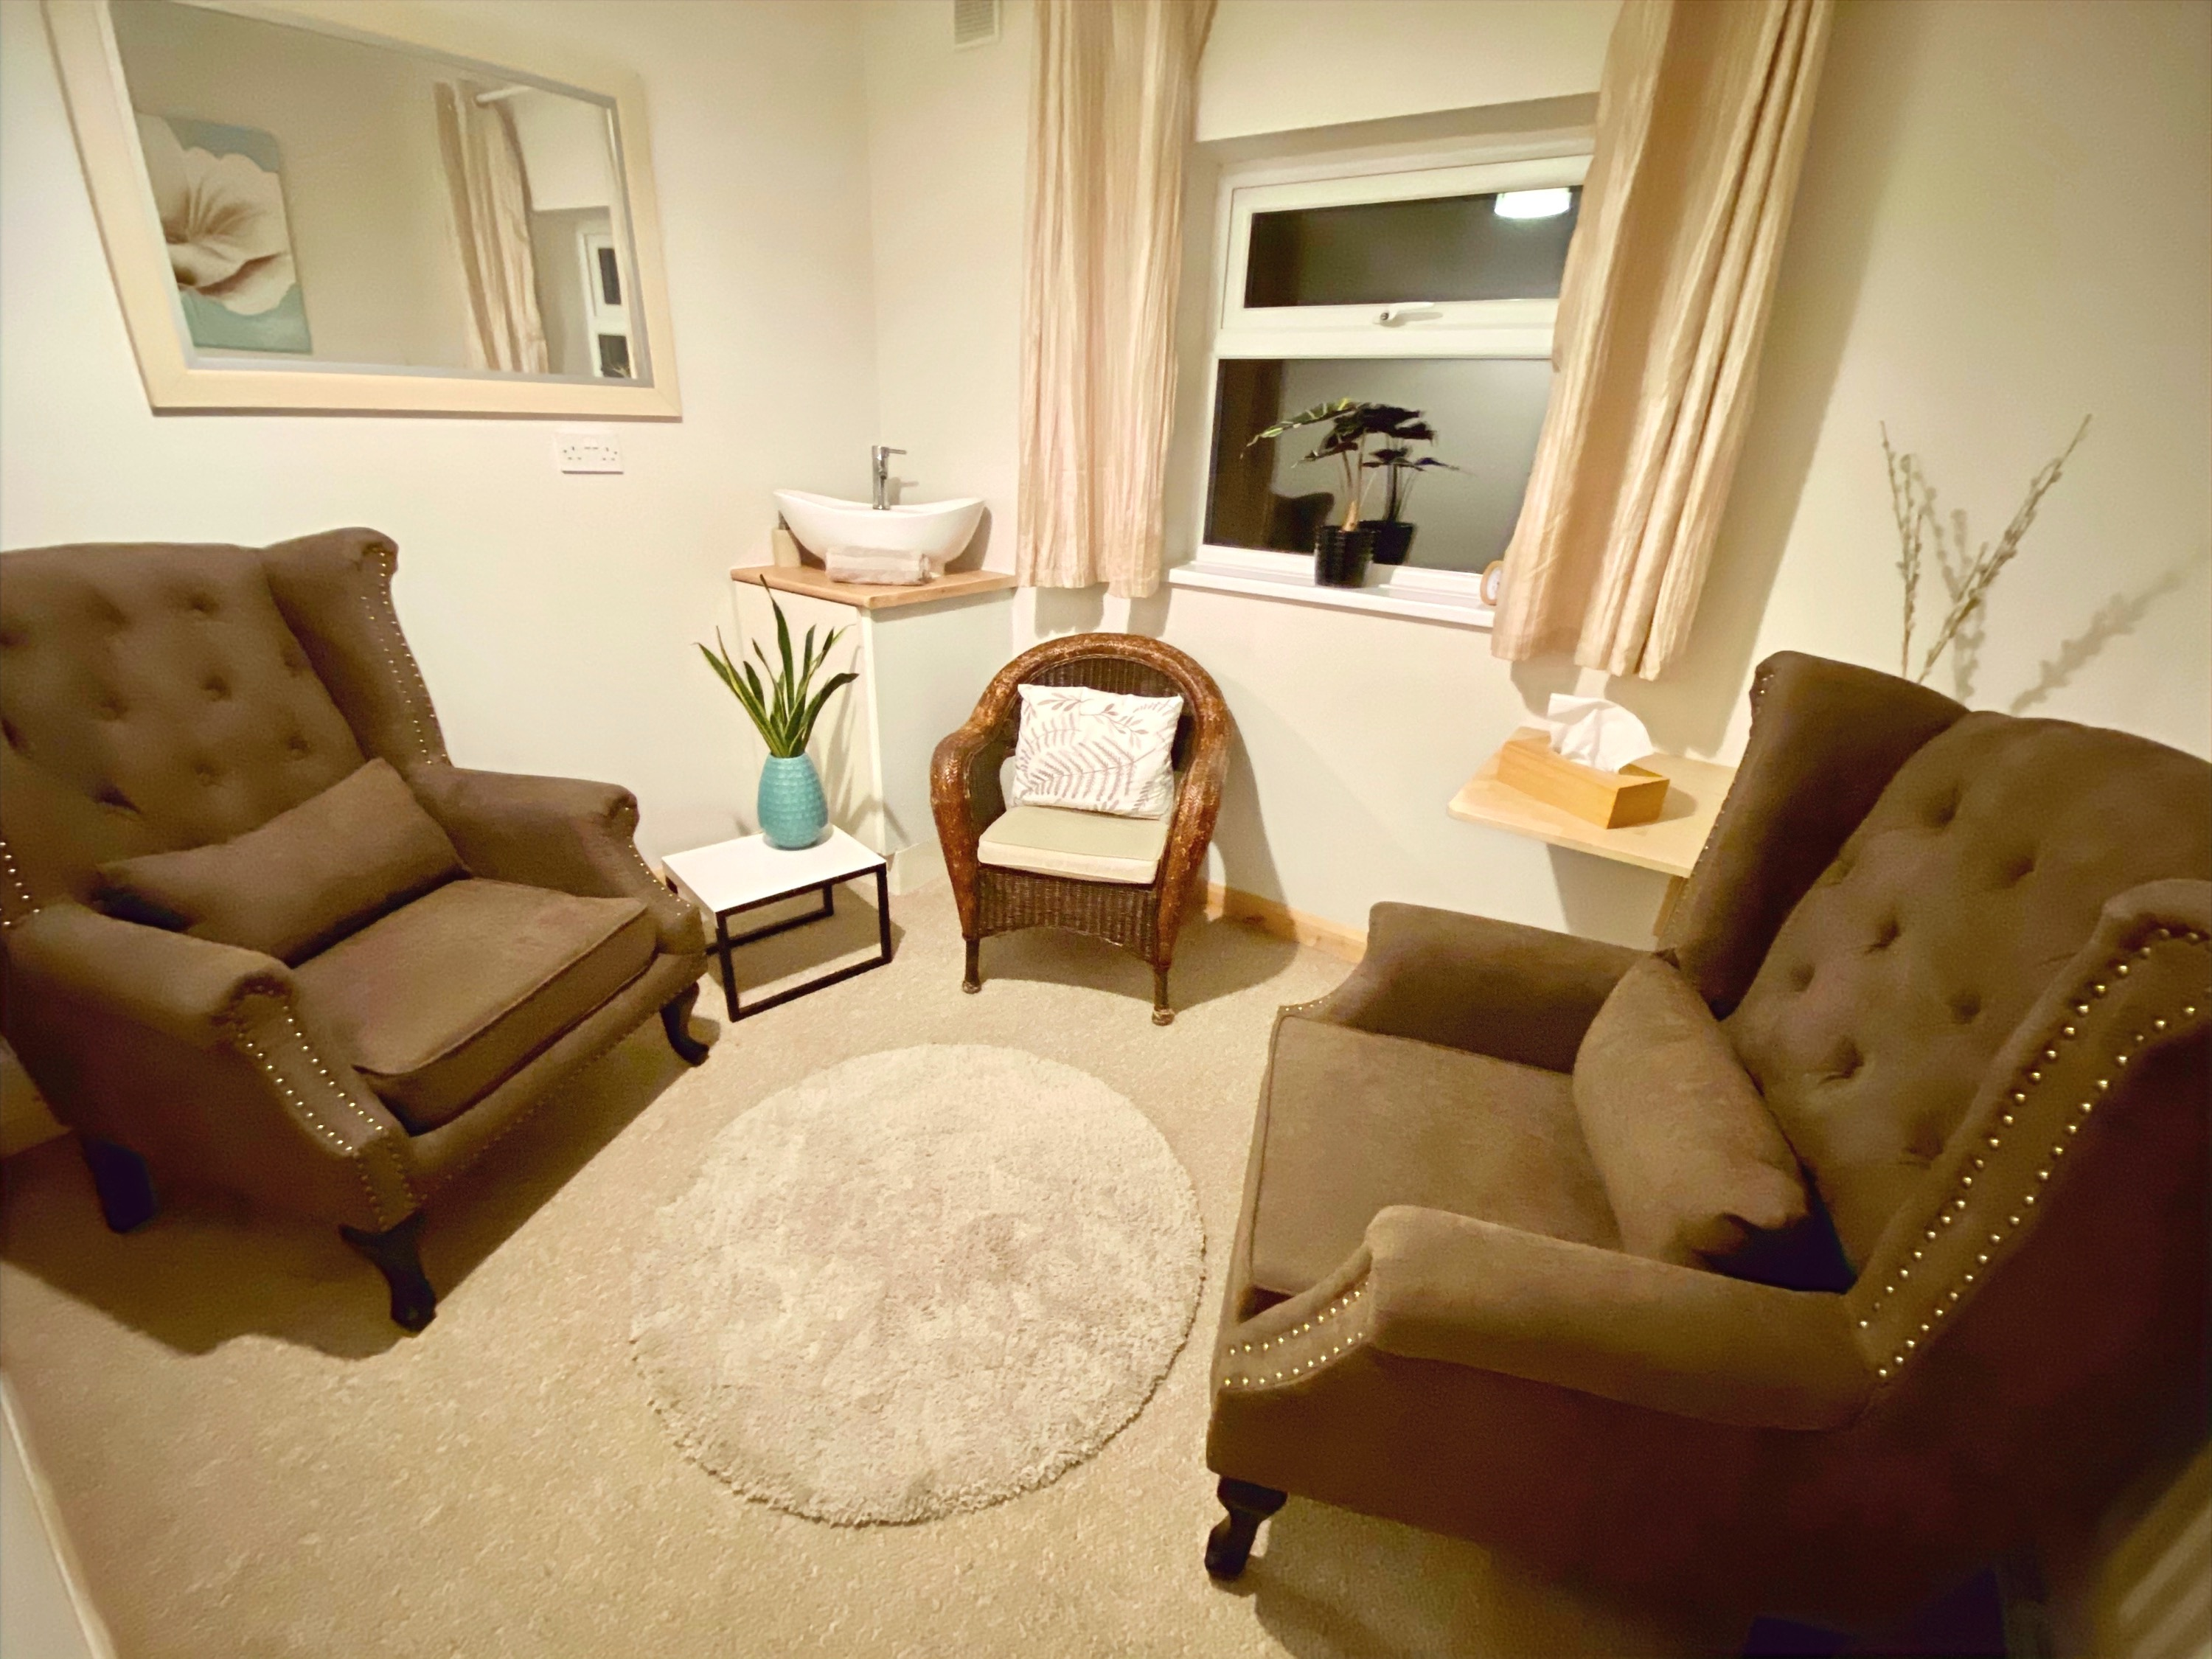 Counselling or talking therapy room